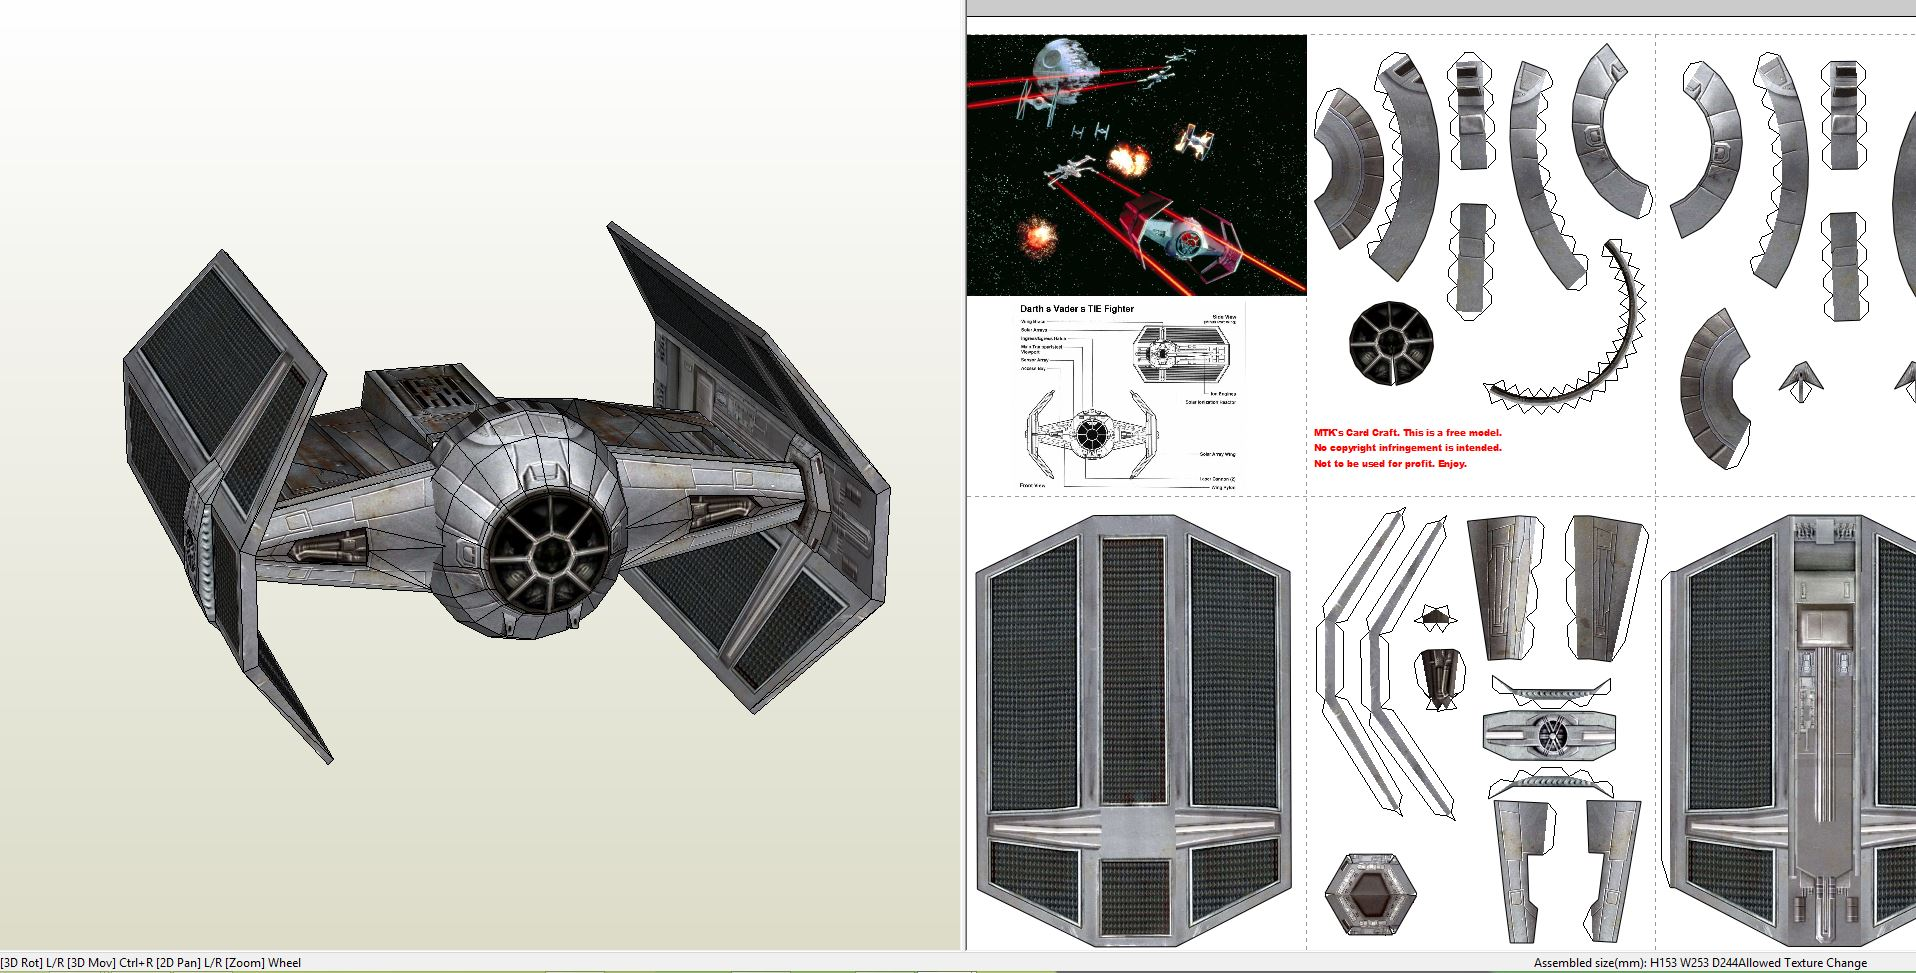 papercraft pdo file template for star wars darth vaders tie fighter. Black Bedroom Furniture Sets. Home Design Ideas